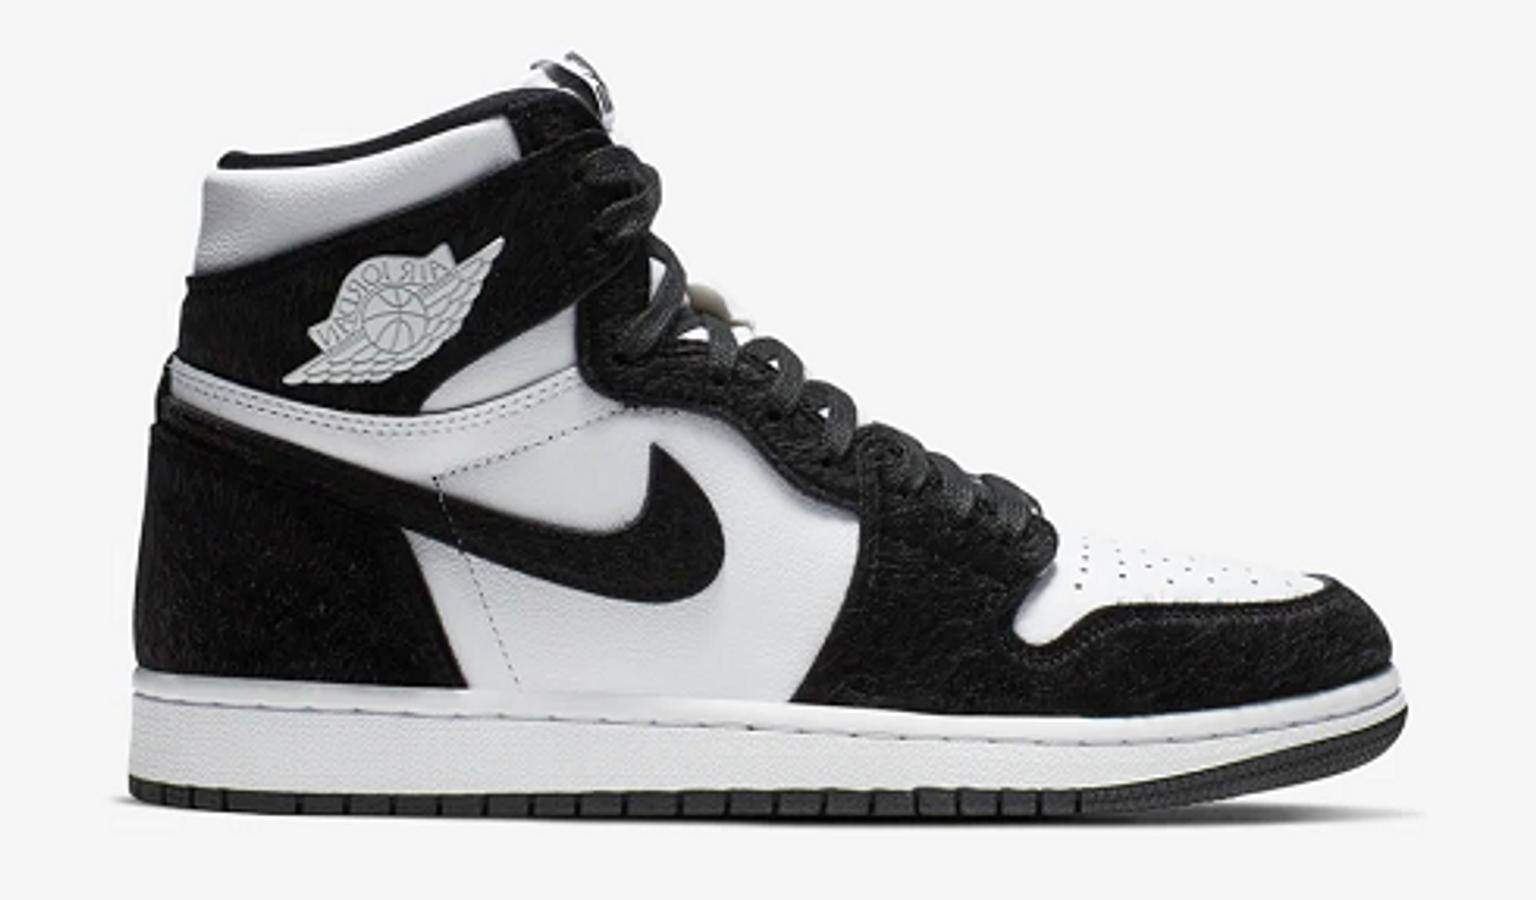 Nike Air Jordan 1 Retro High OG Twist (Panda)